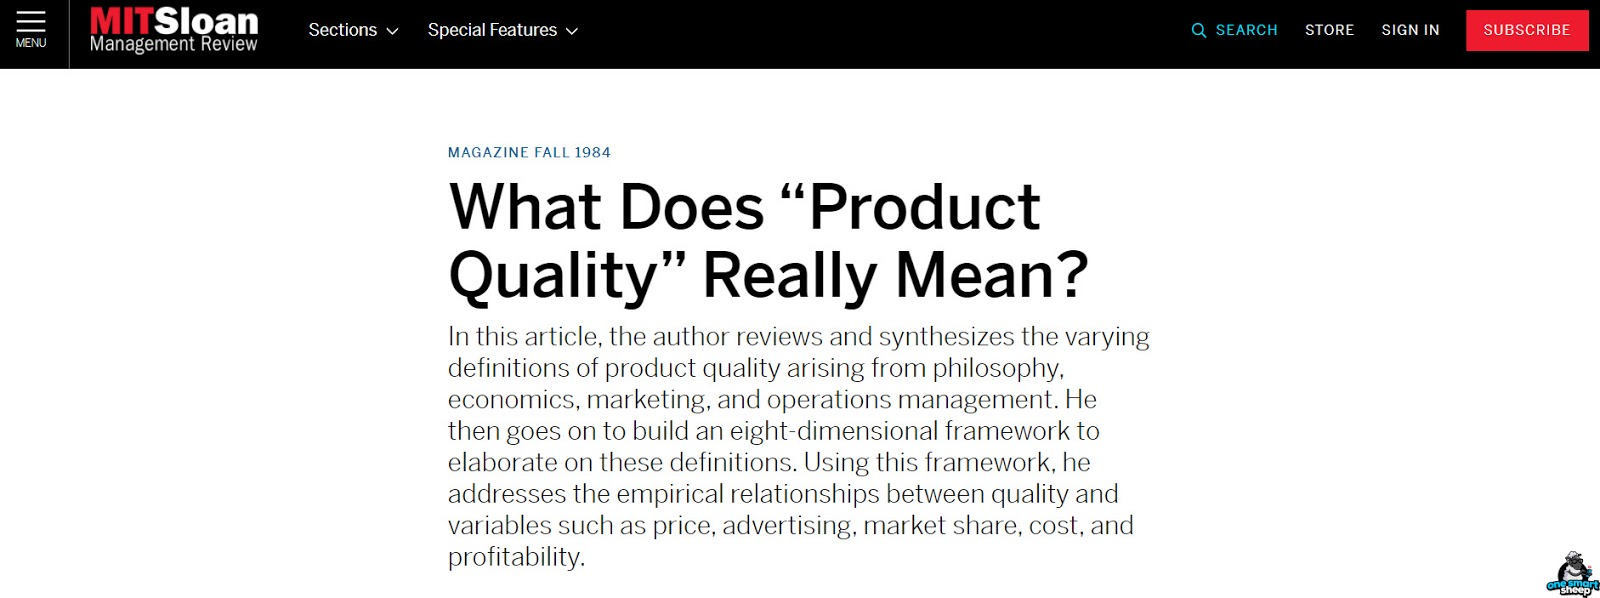 What Does Product Mean